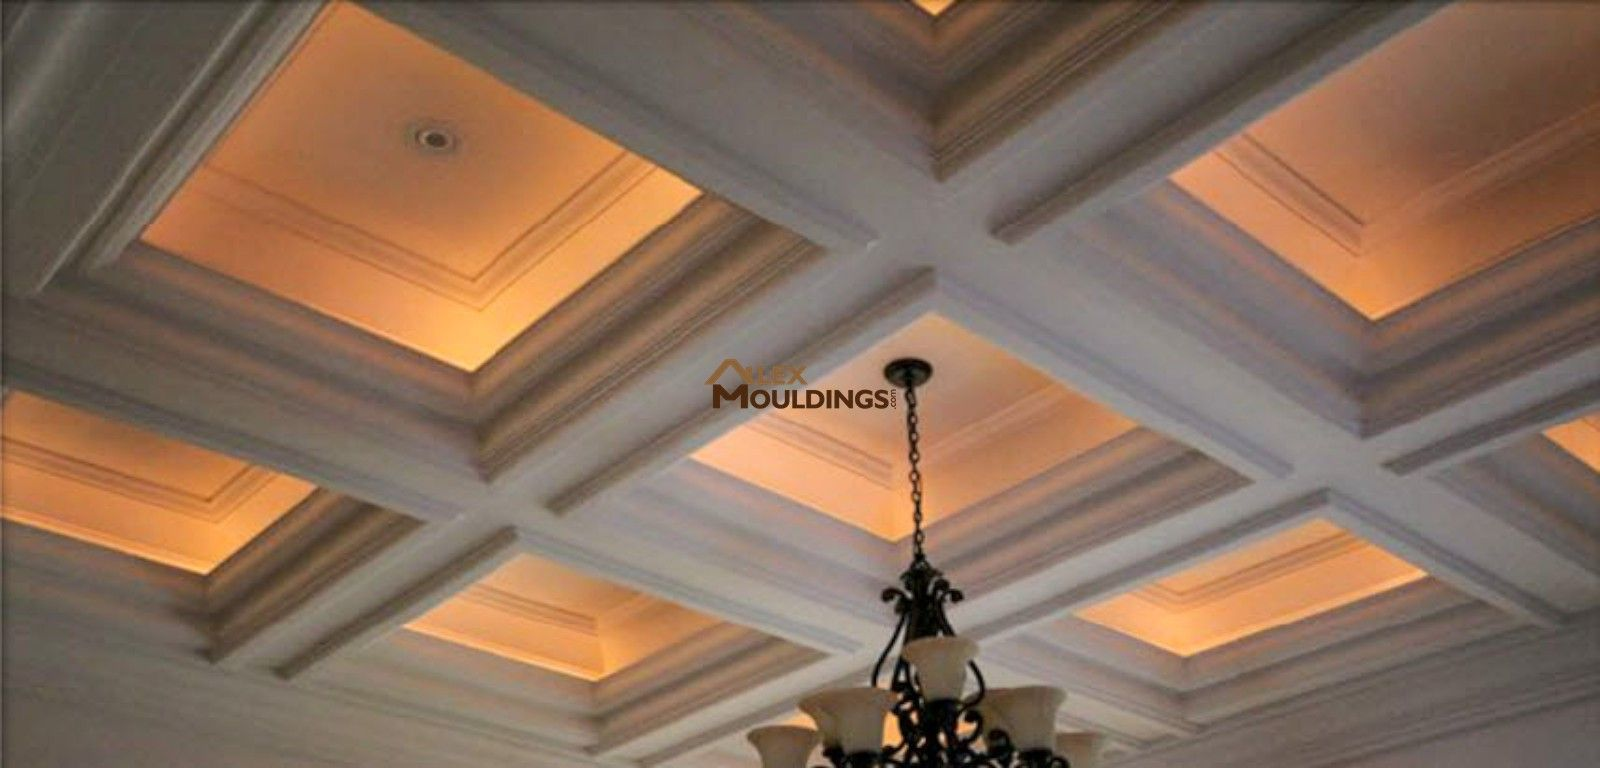 Cove Lighting Inside Waffle Ceiling Boxes Trim Pinterest - Cornice crown moulding toronto wainscoting coffered ceiling